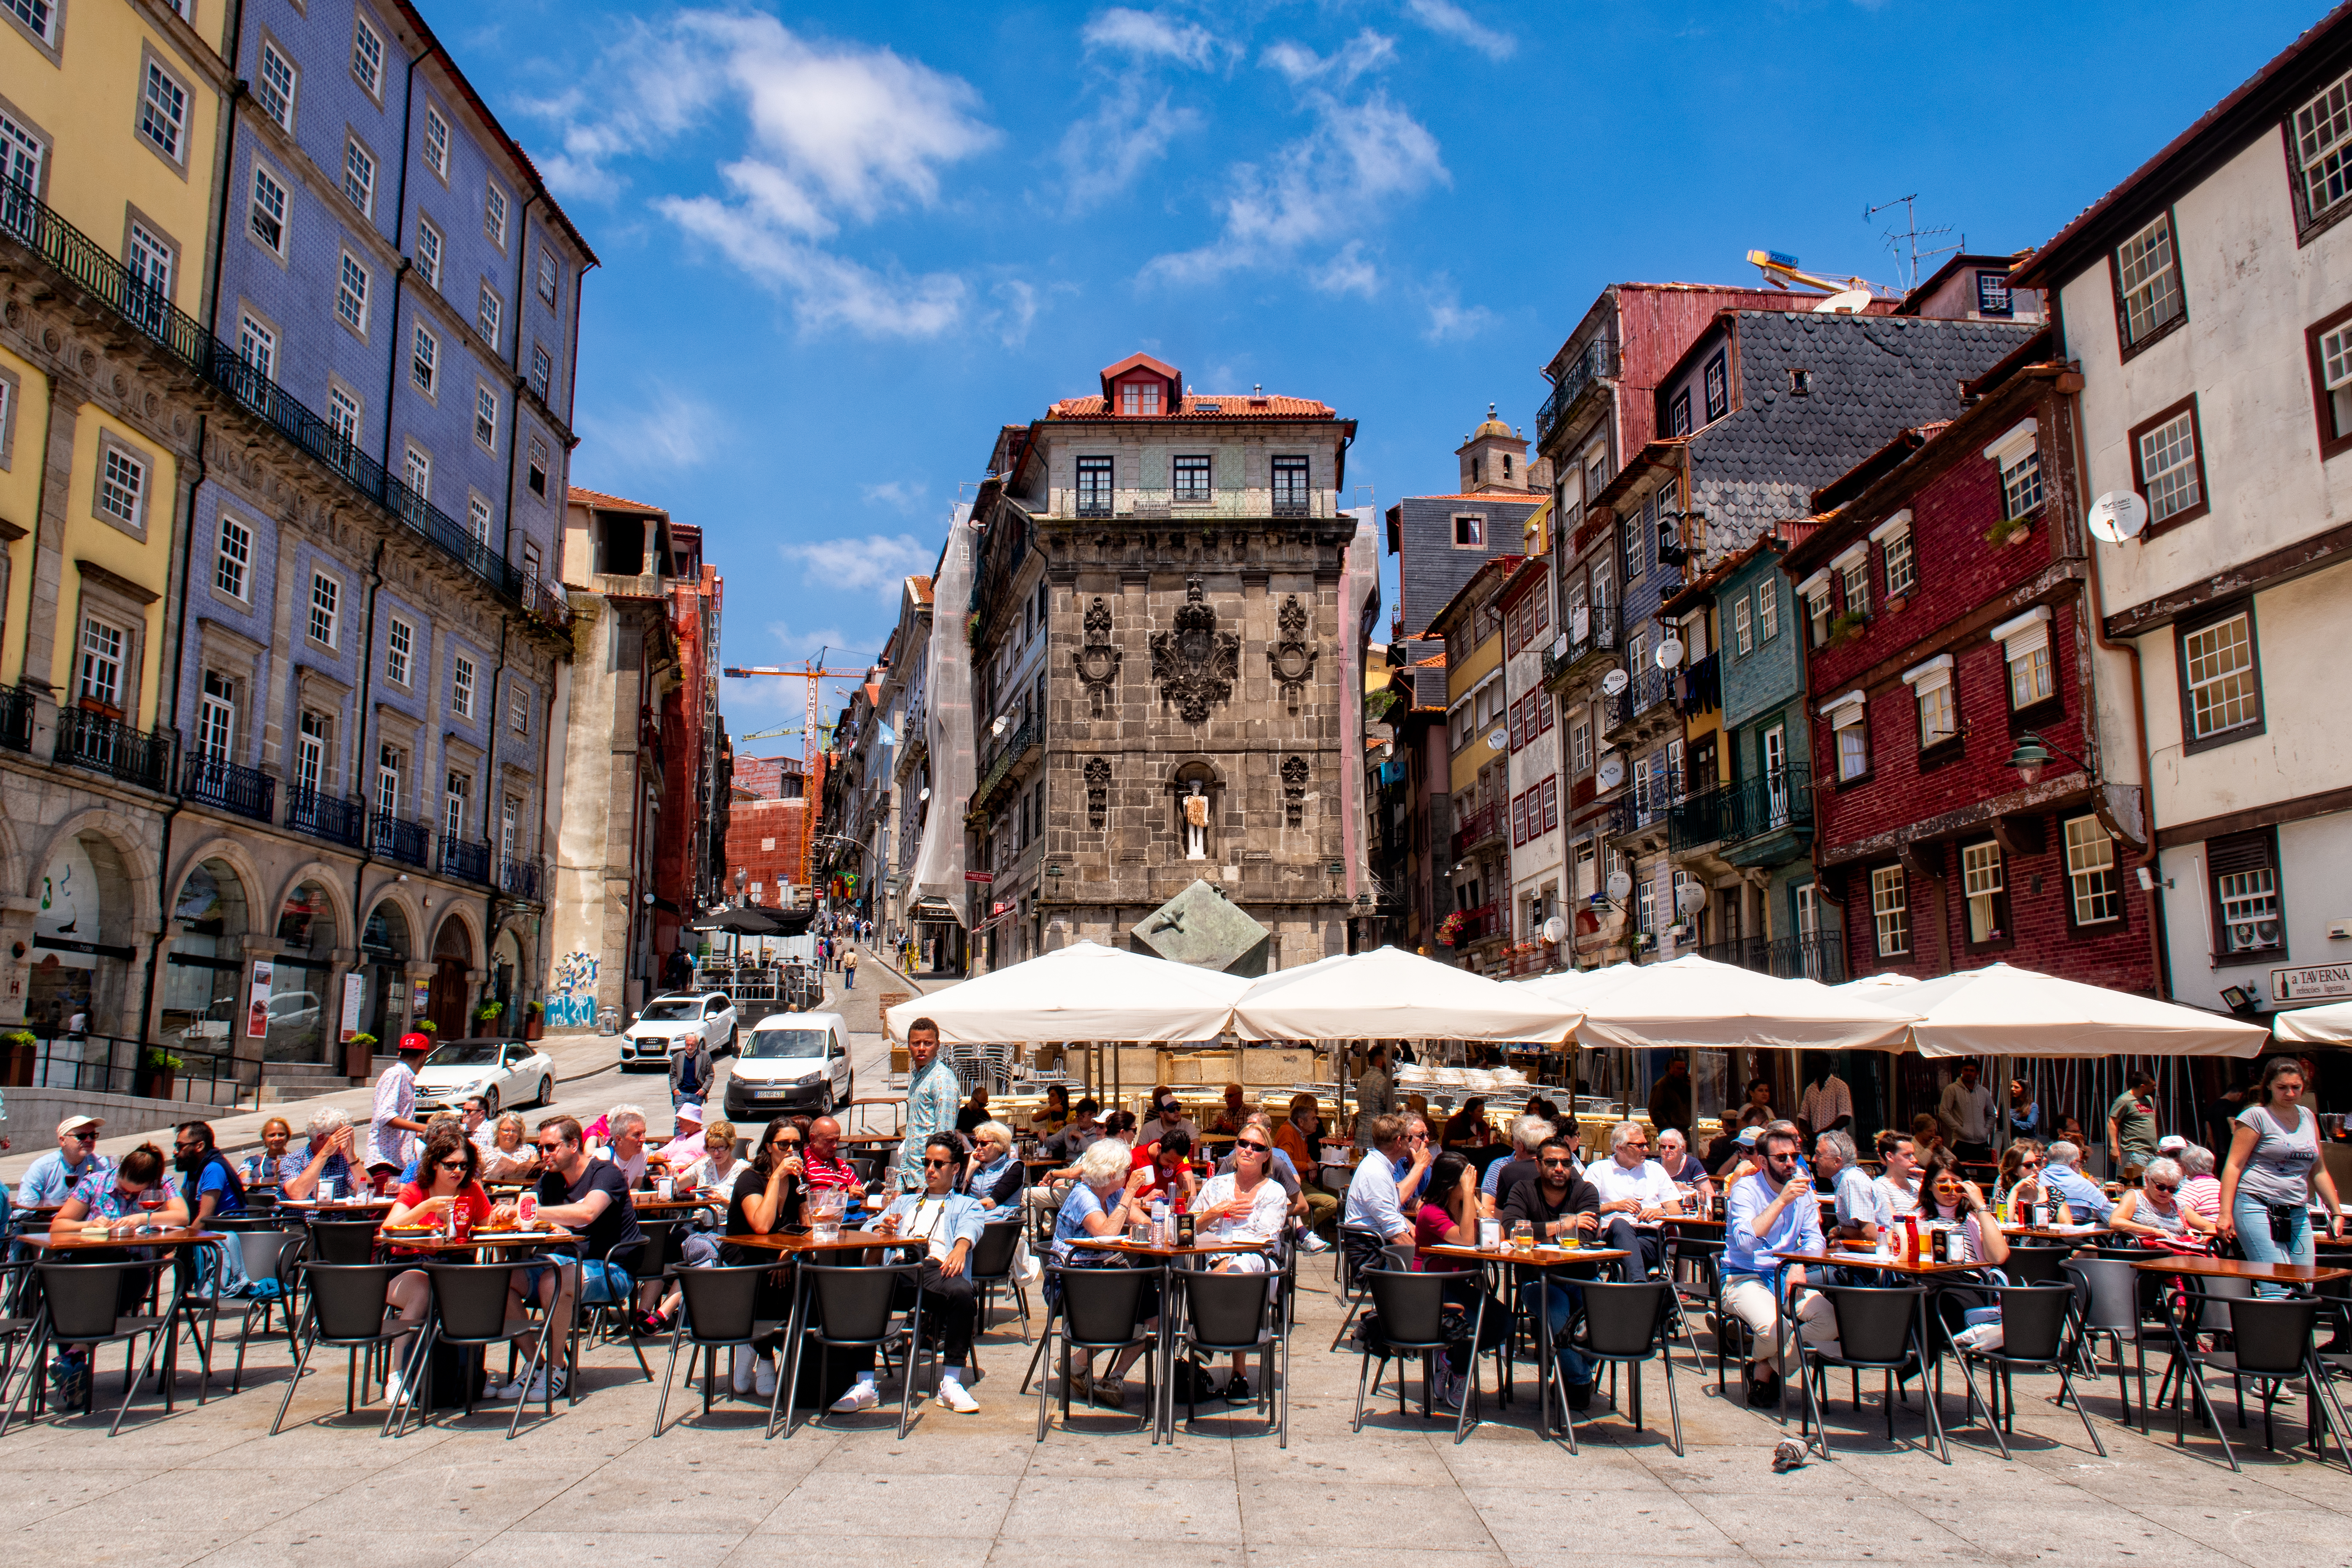 A historic square is packed with diners eating under umbrellas in Porto